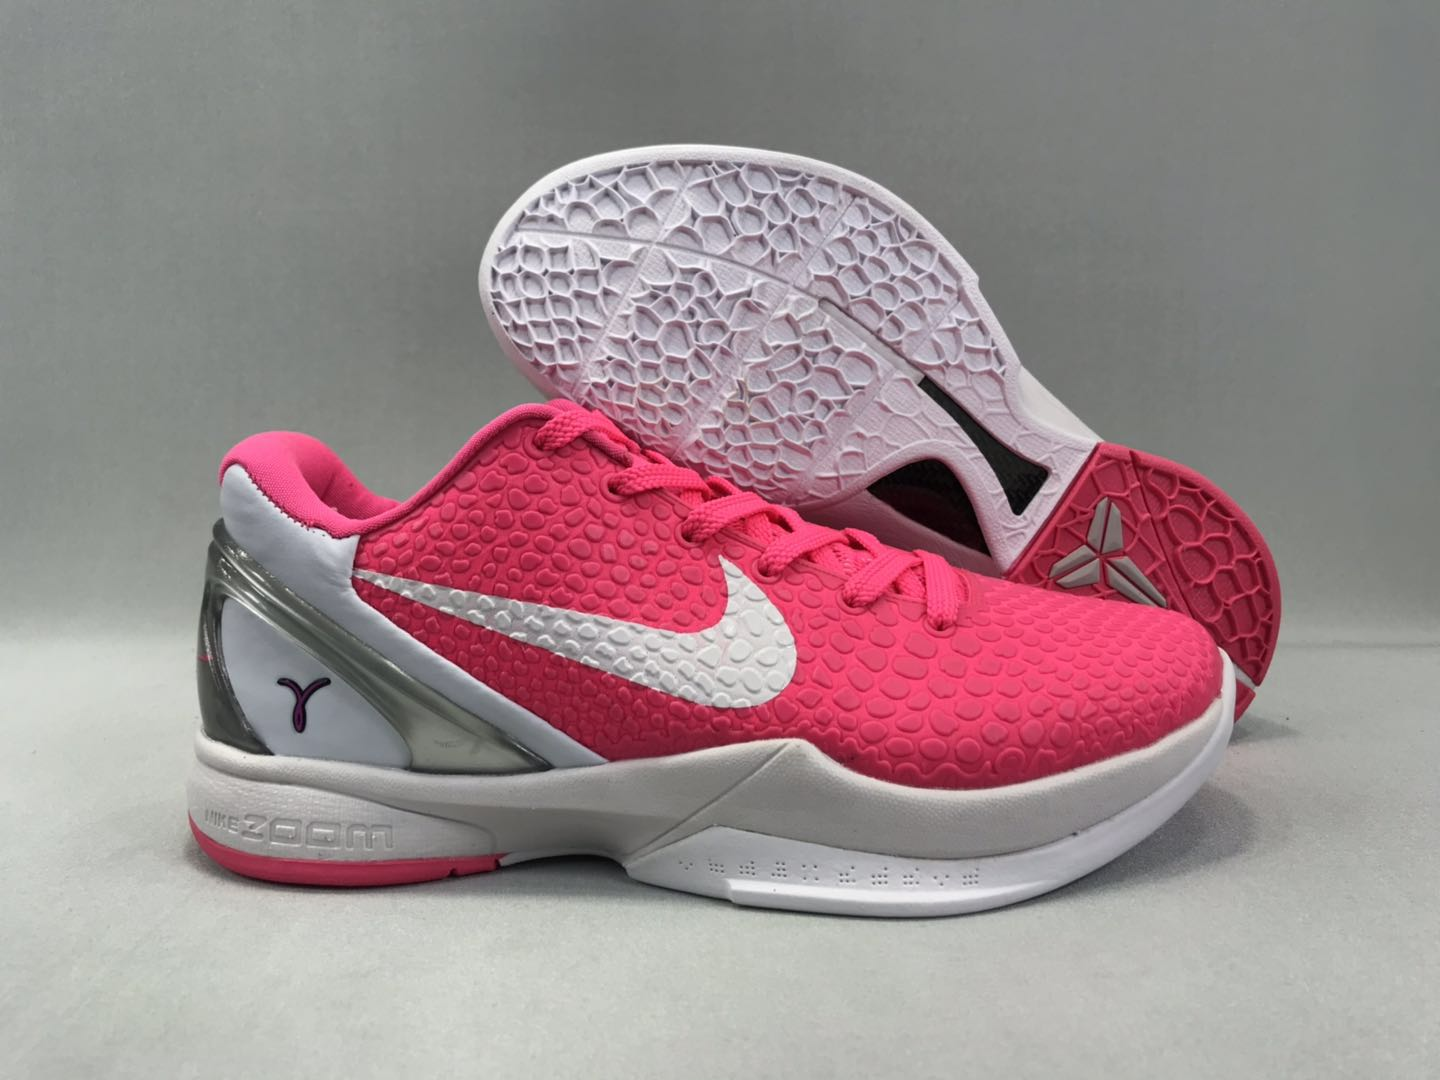 New-release Nike Kobe 8 All Pink White Shoes